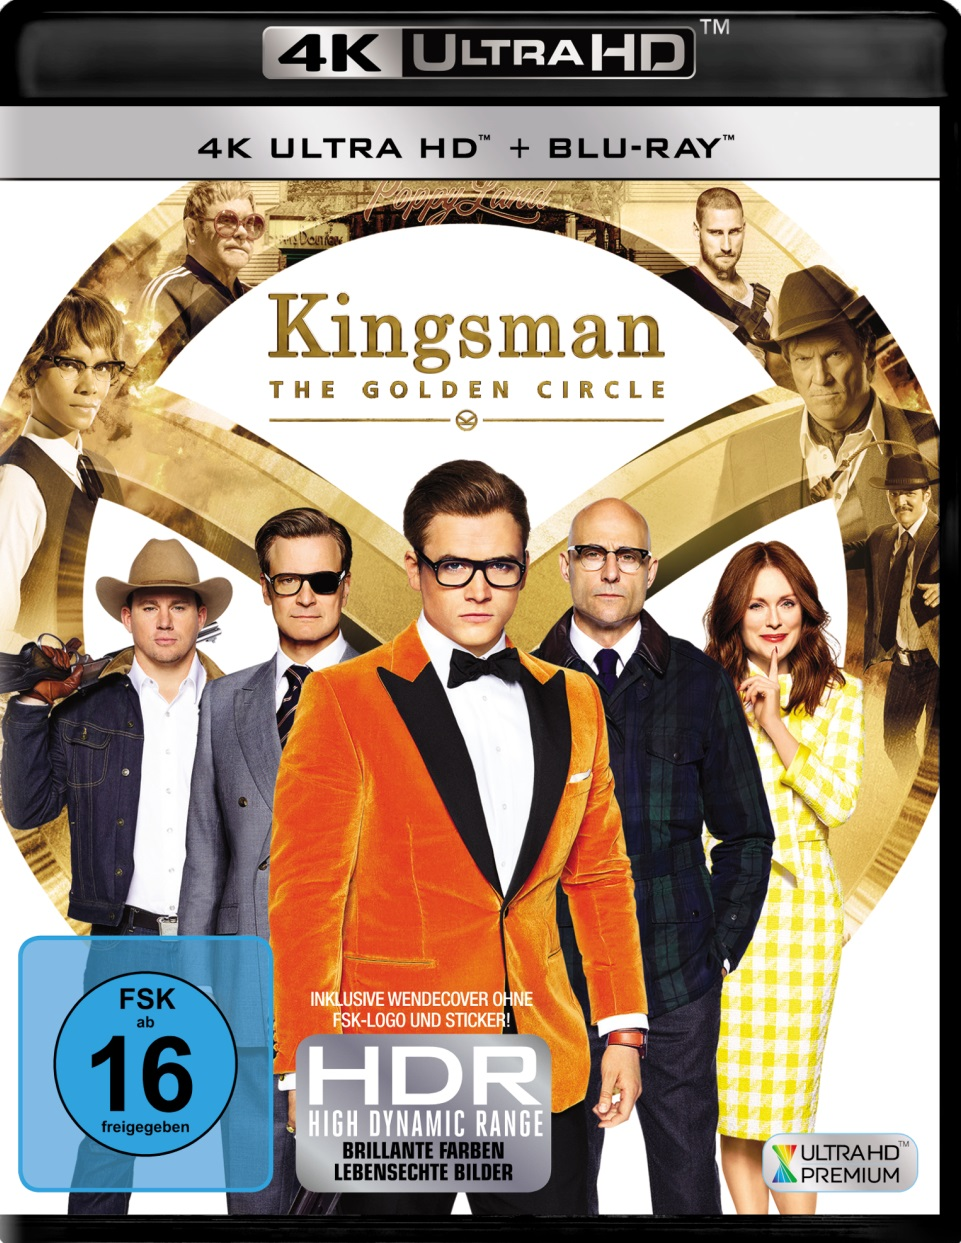 Kingsman The Golden Circle Wallpaper Best Wallpaper